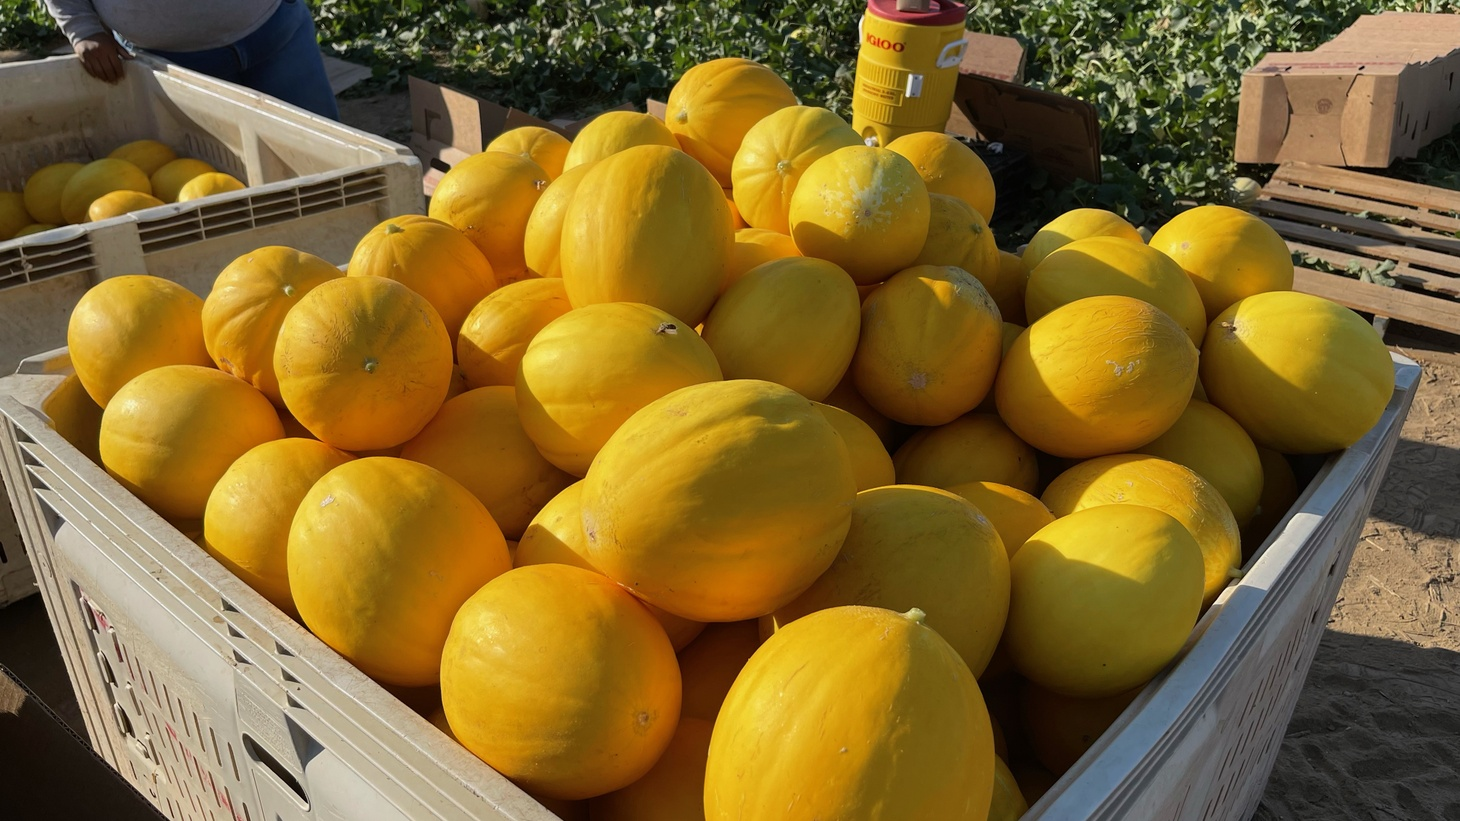 With 10 varieties of melons, Alex Weiser's Brilliant melon is nothing short of its name.